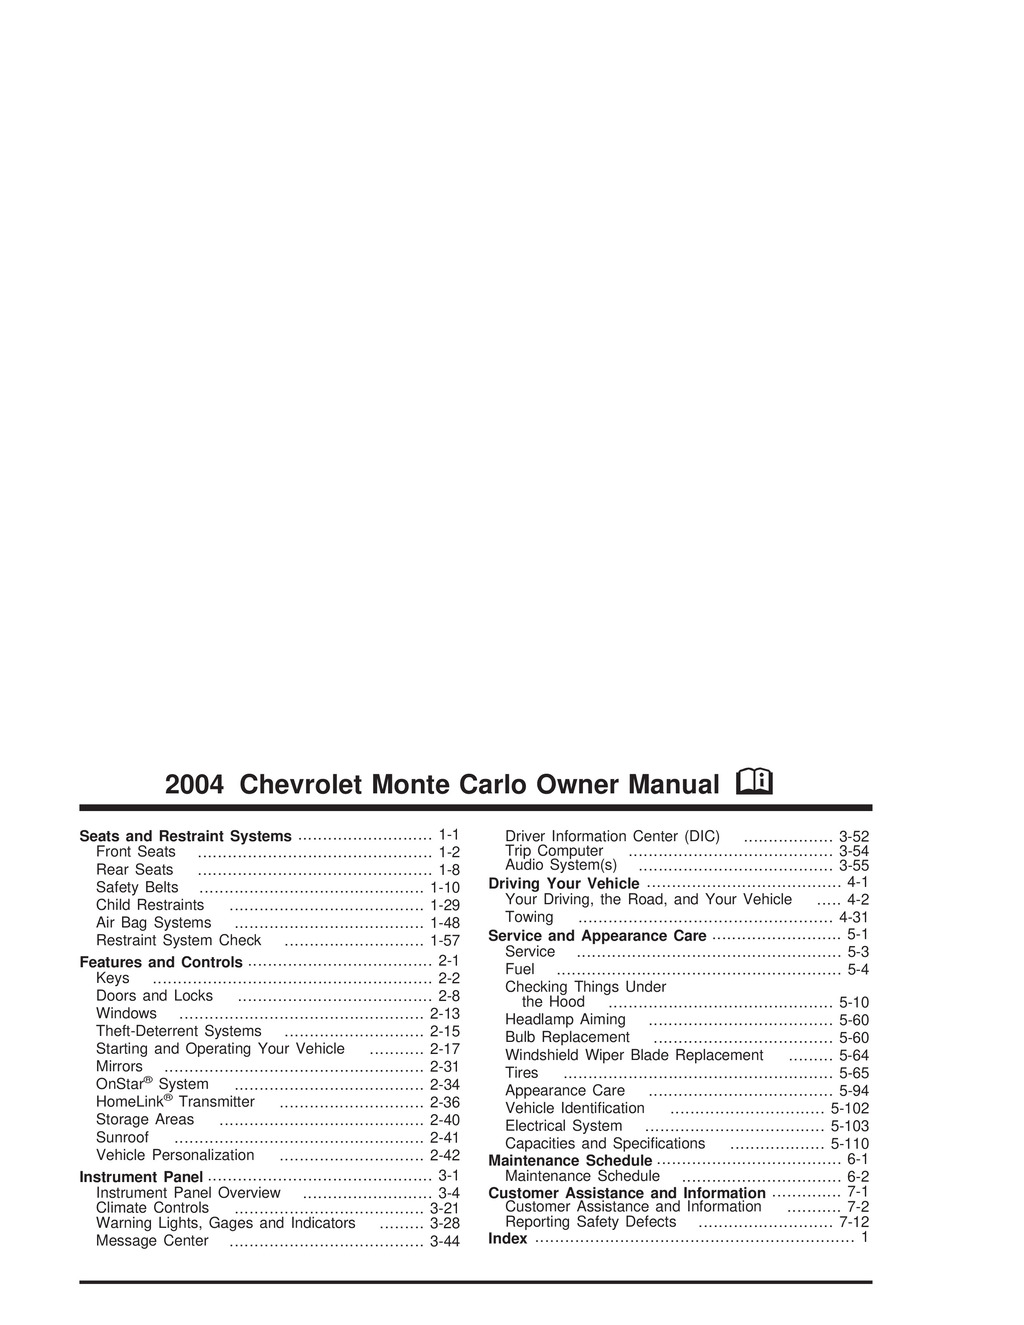 2004 Chevrolet Monte Carlo owners manual